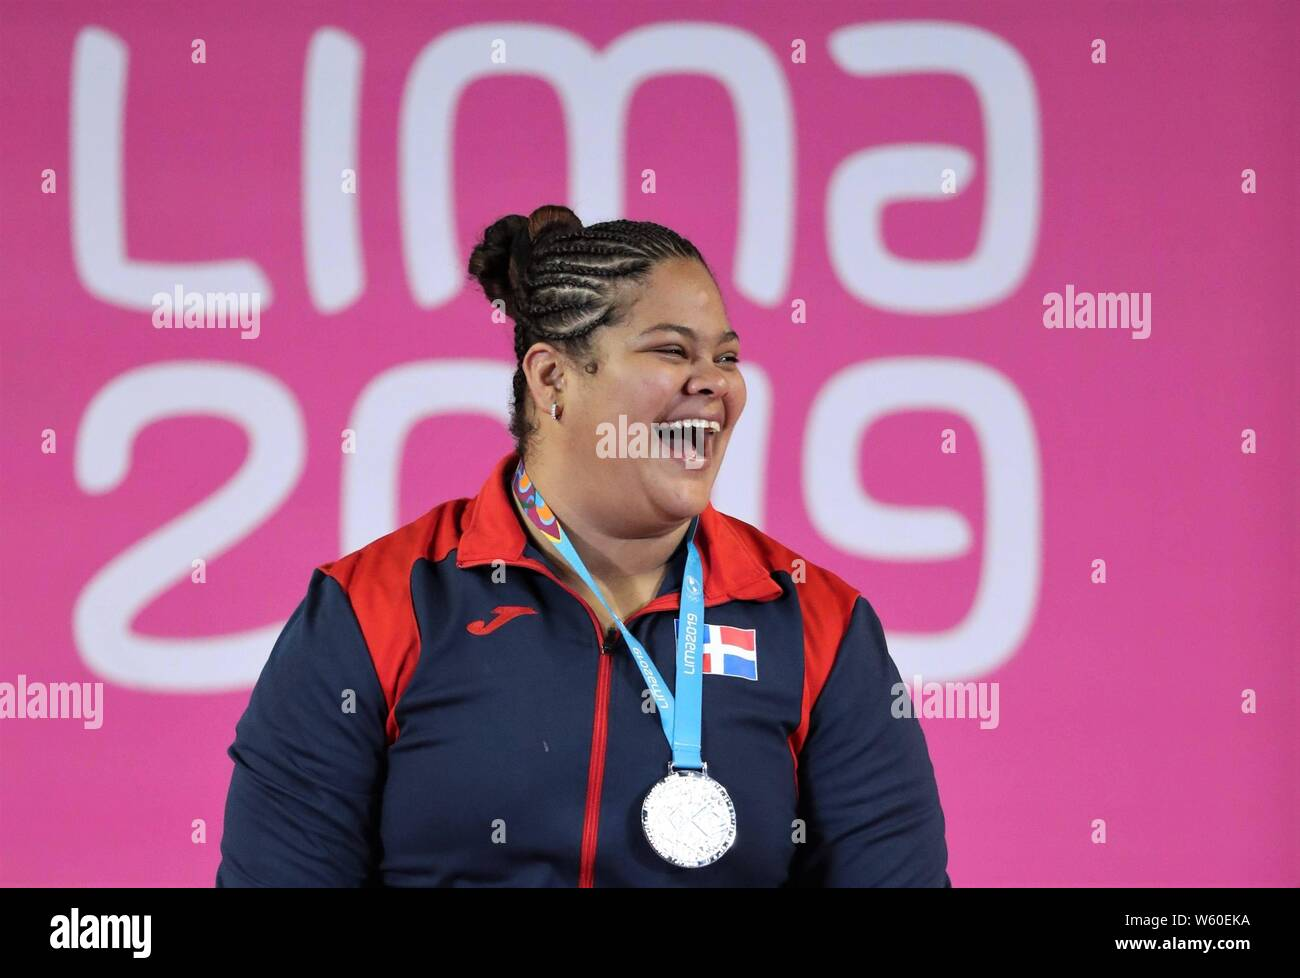 Dominican Republic at the 2019 Pan American Games